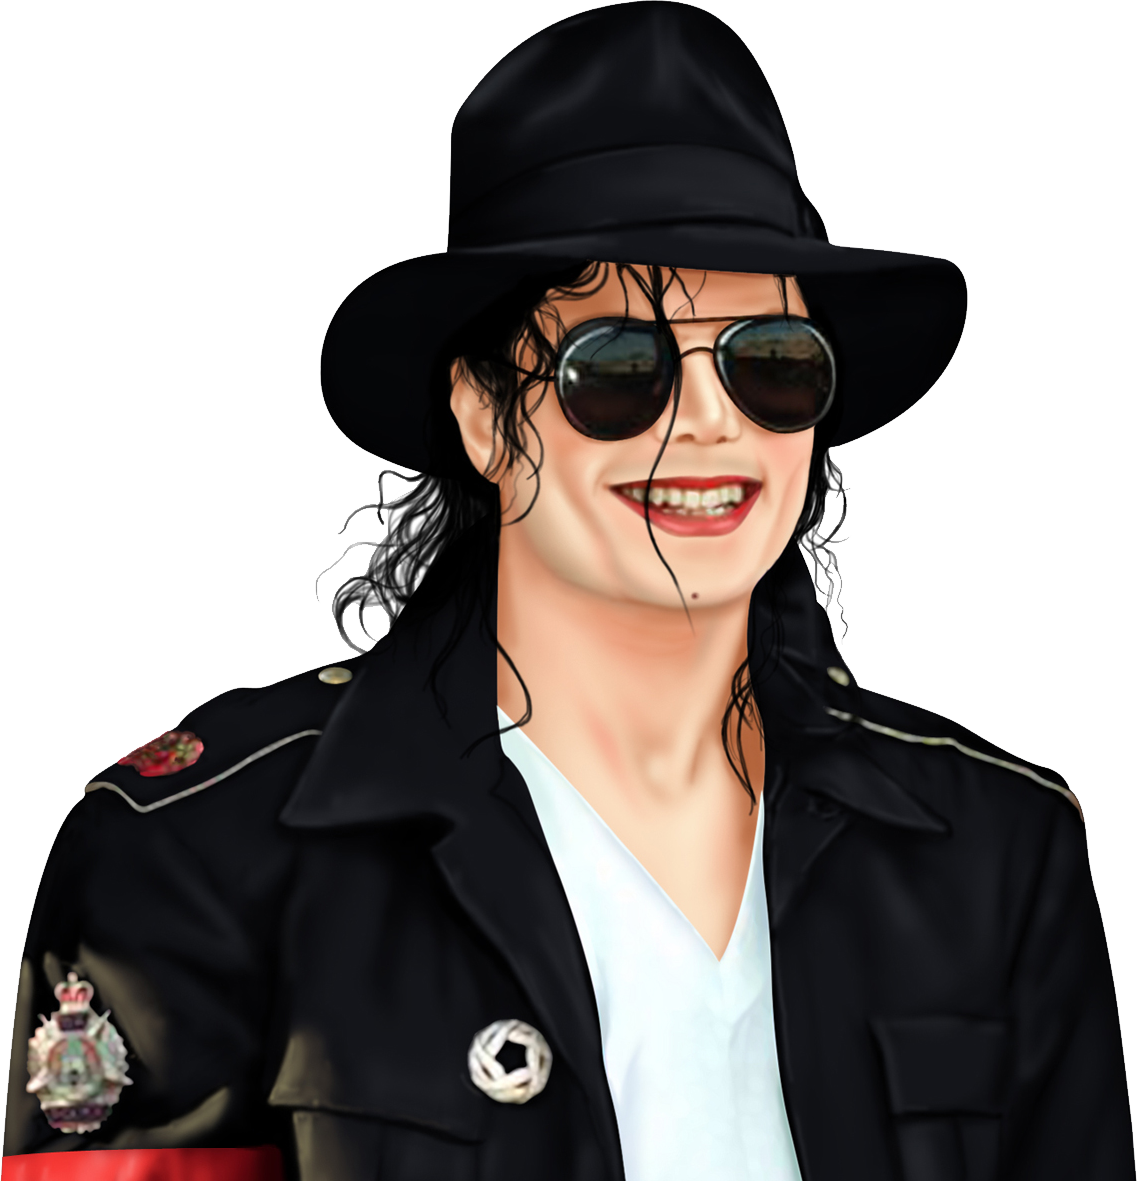 michael jackson png images for download crazypngm crazy png images download #28846